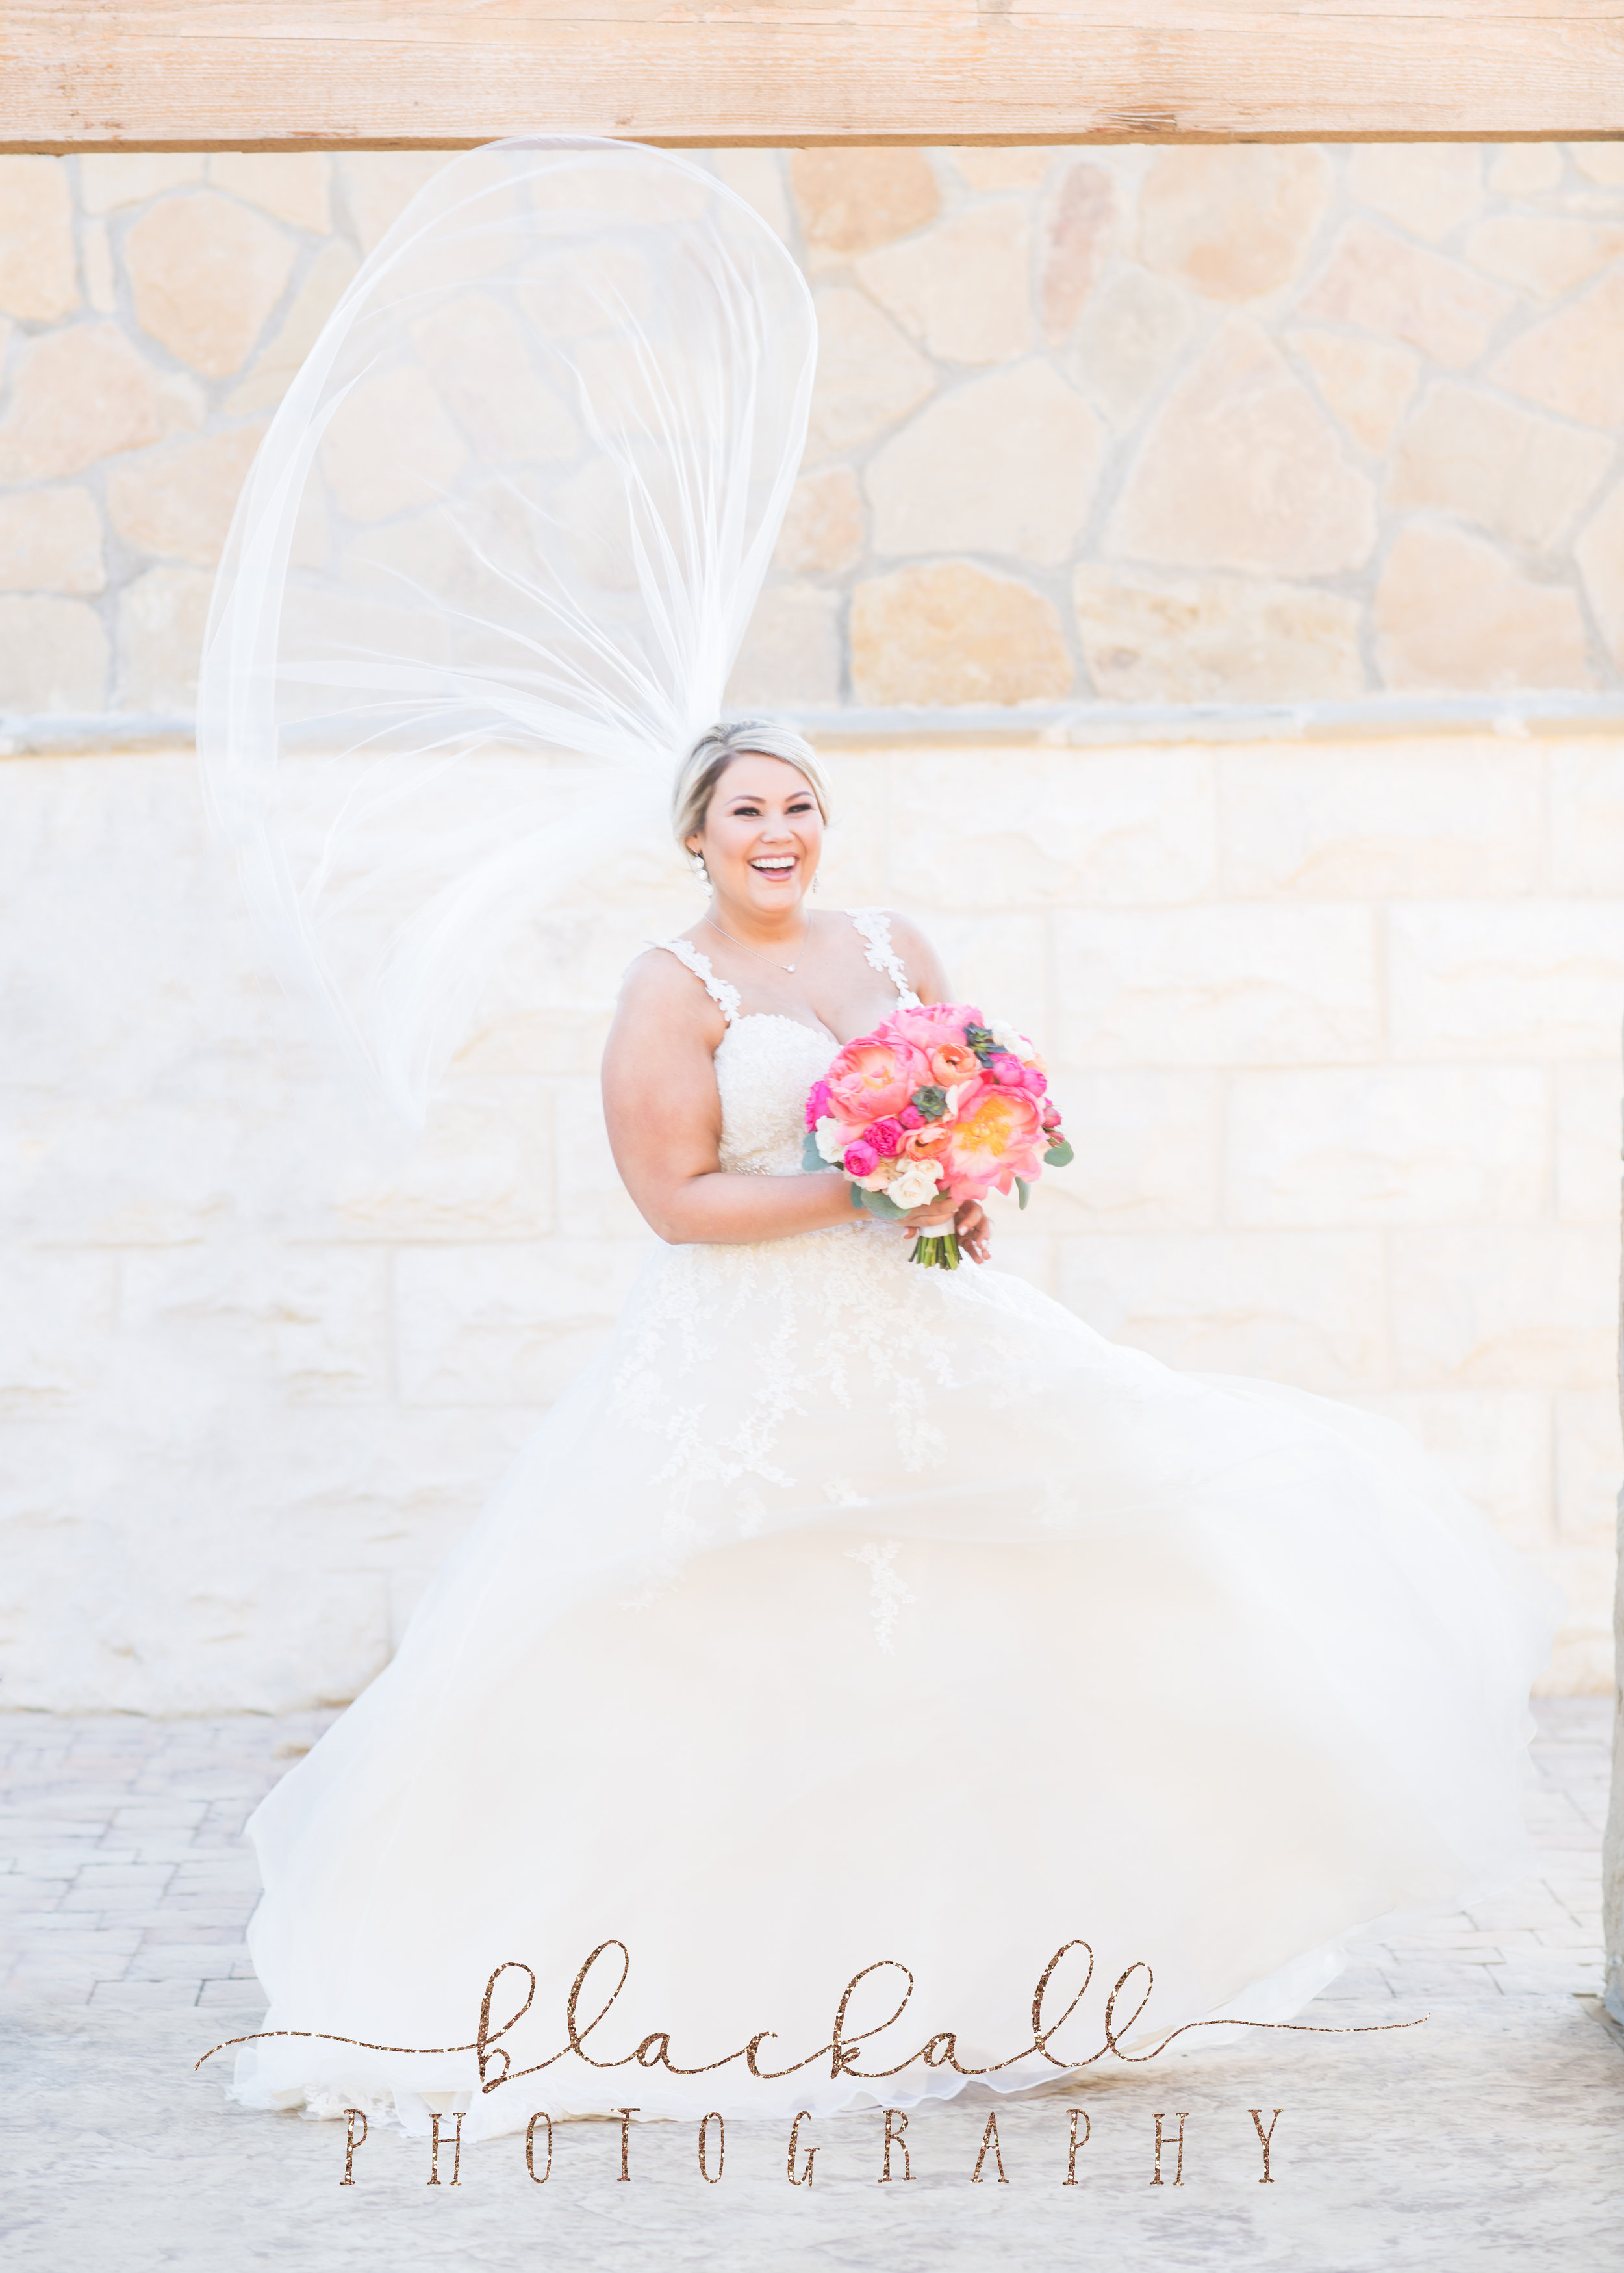 When the wind catches your veil just right!